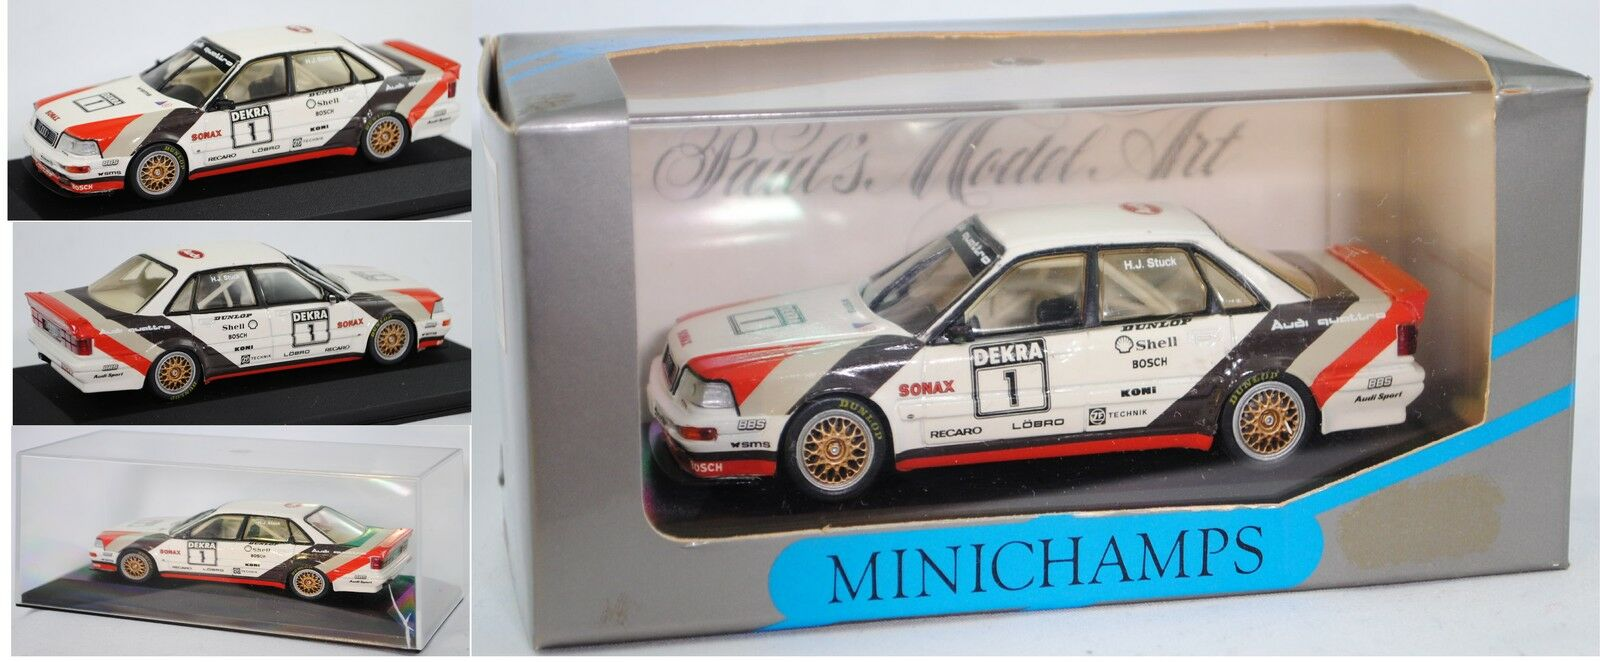 Minichamps Minichamps Minichamps 11101 AUDI v8 quattro EVO DTM Stagione 1991, in stucco, 1 43 748bf3